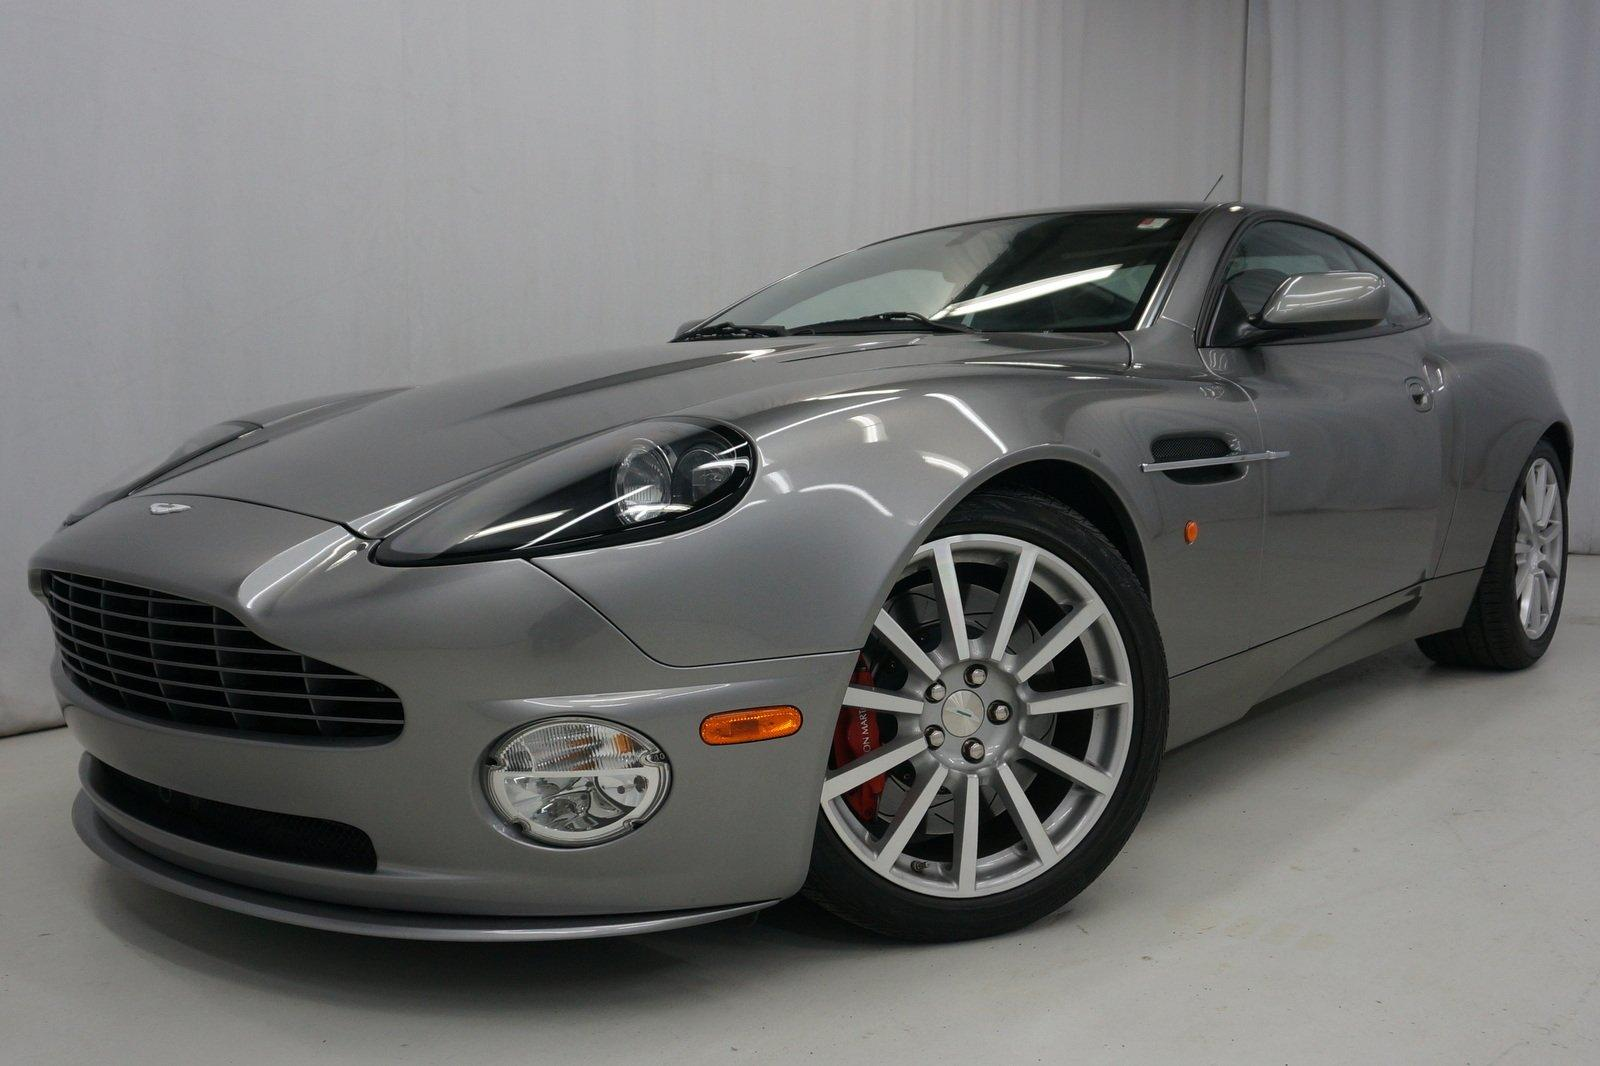 Aston Martin Vanquish S Stock B For Sale Near King Of - Aston martin vanquish 2006 for sale